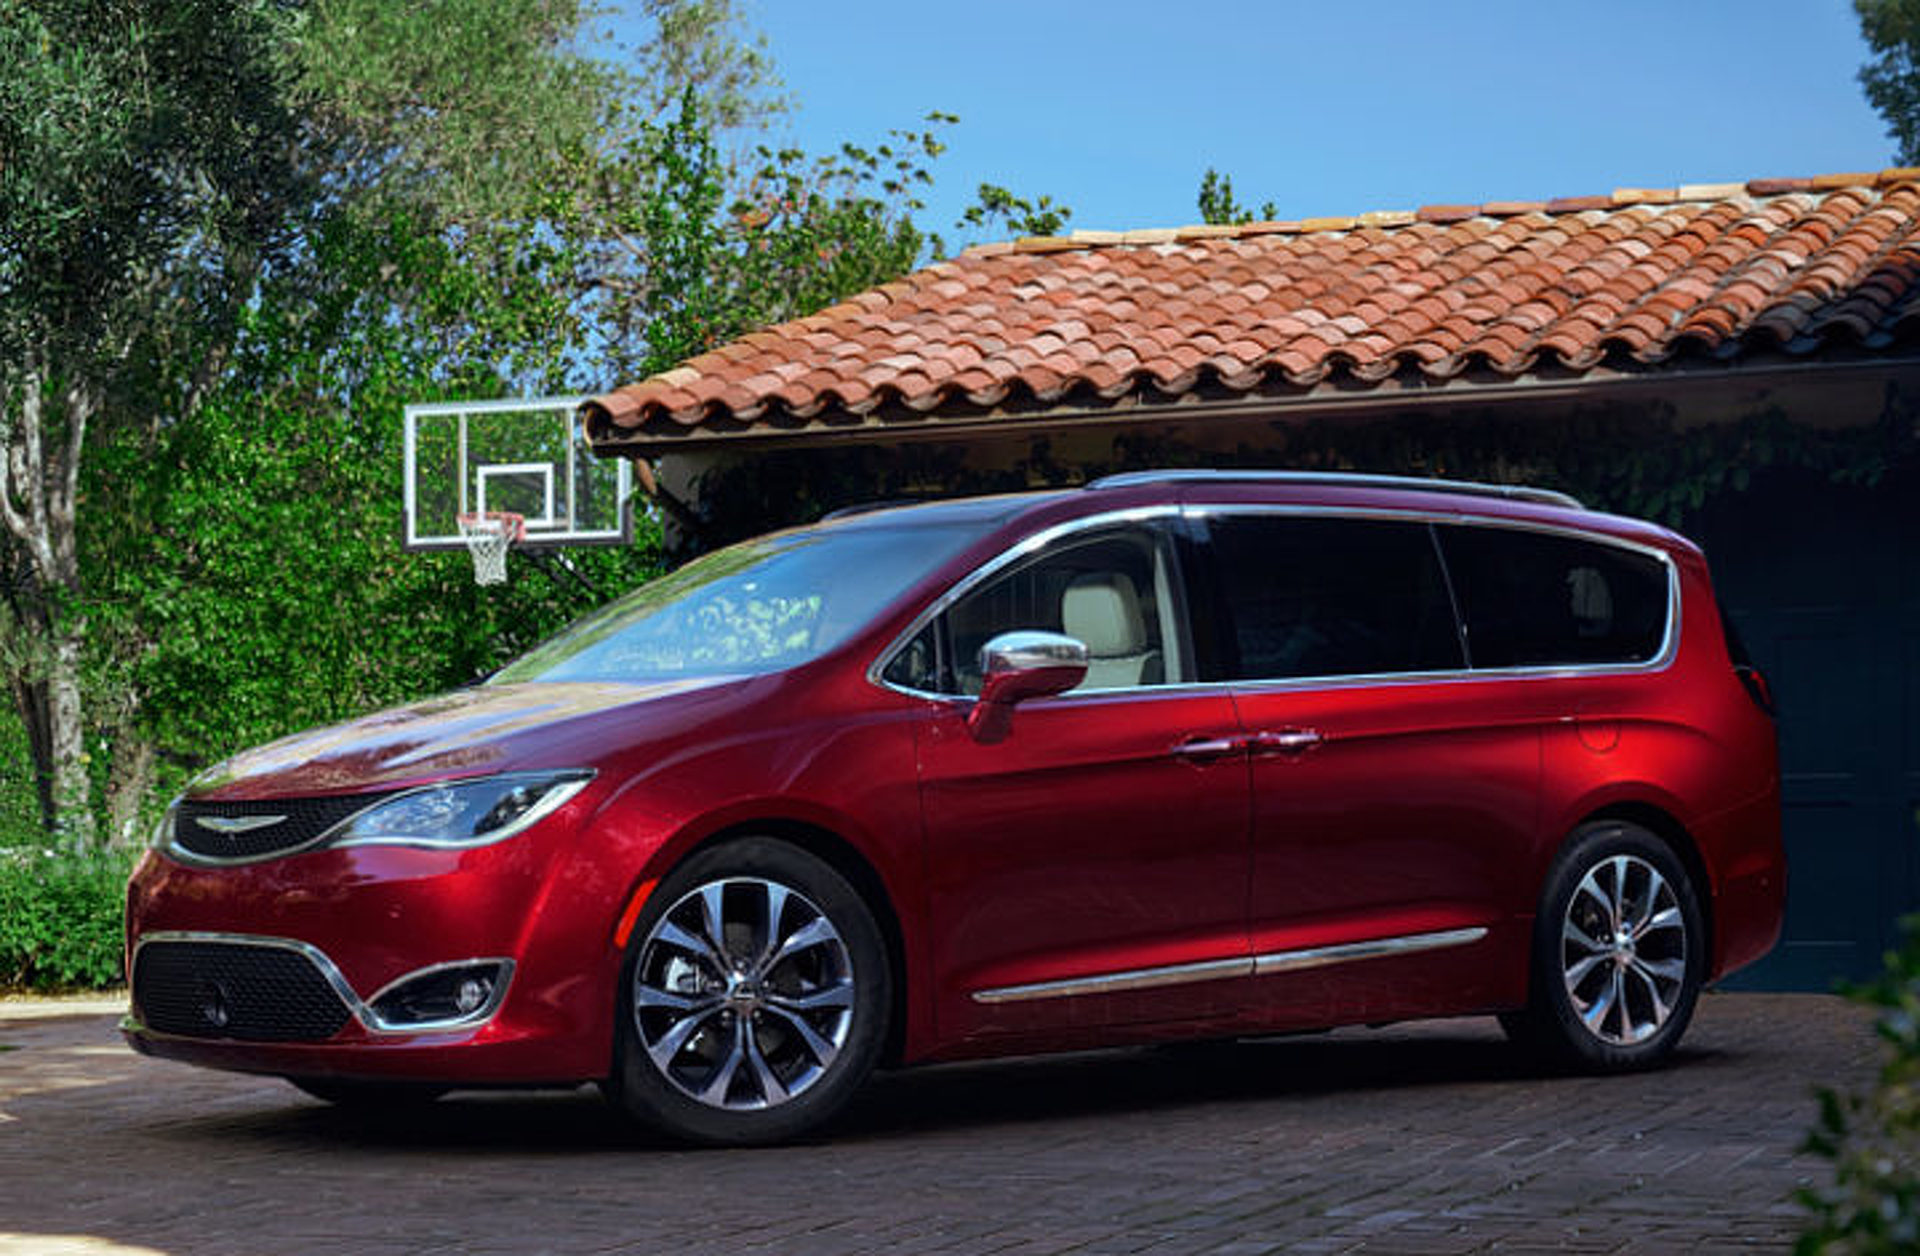 2017 chrysler town and country launch date 2018 cars models. Black Bedroom Furniture Sets. Home Design Ideas